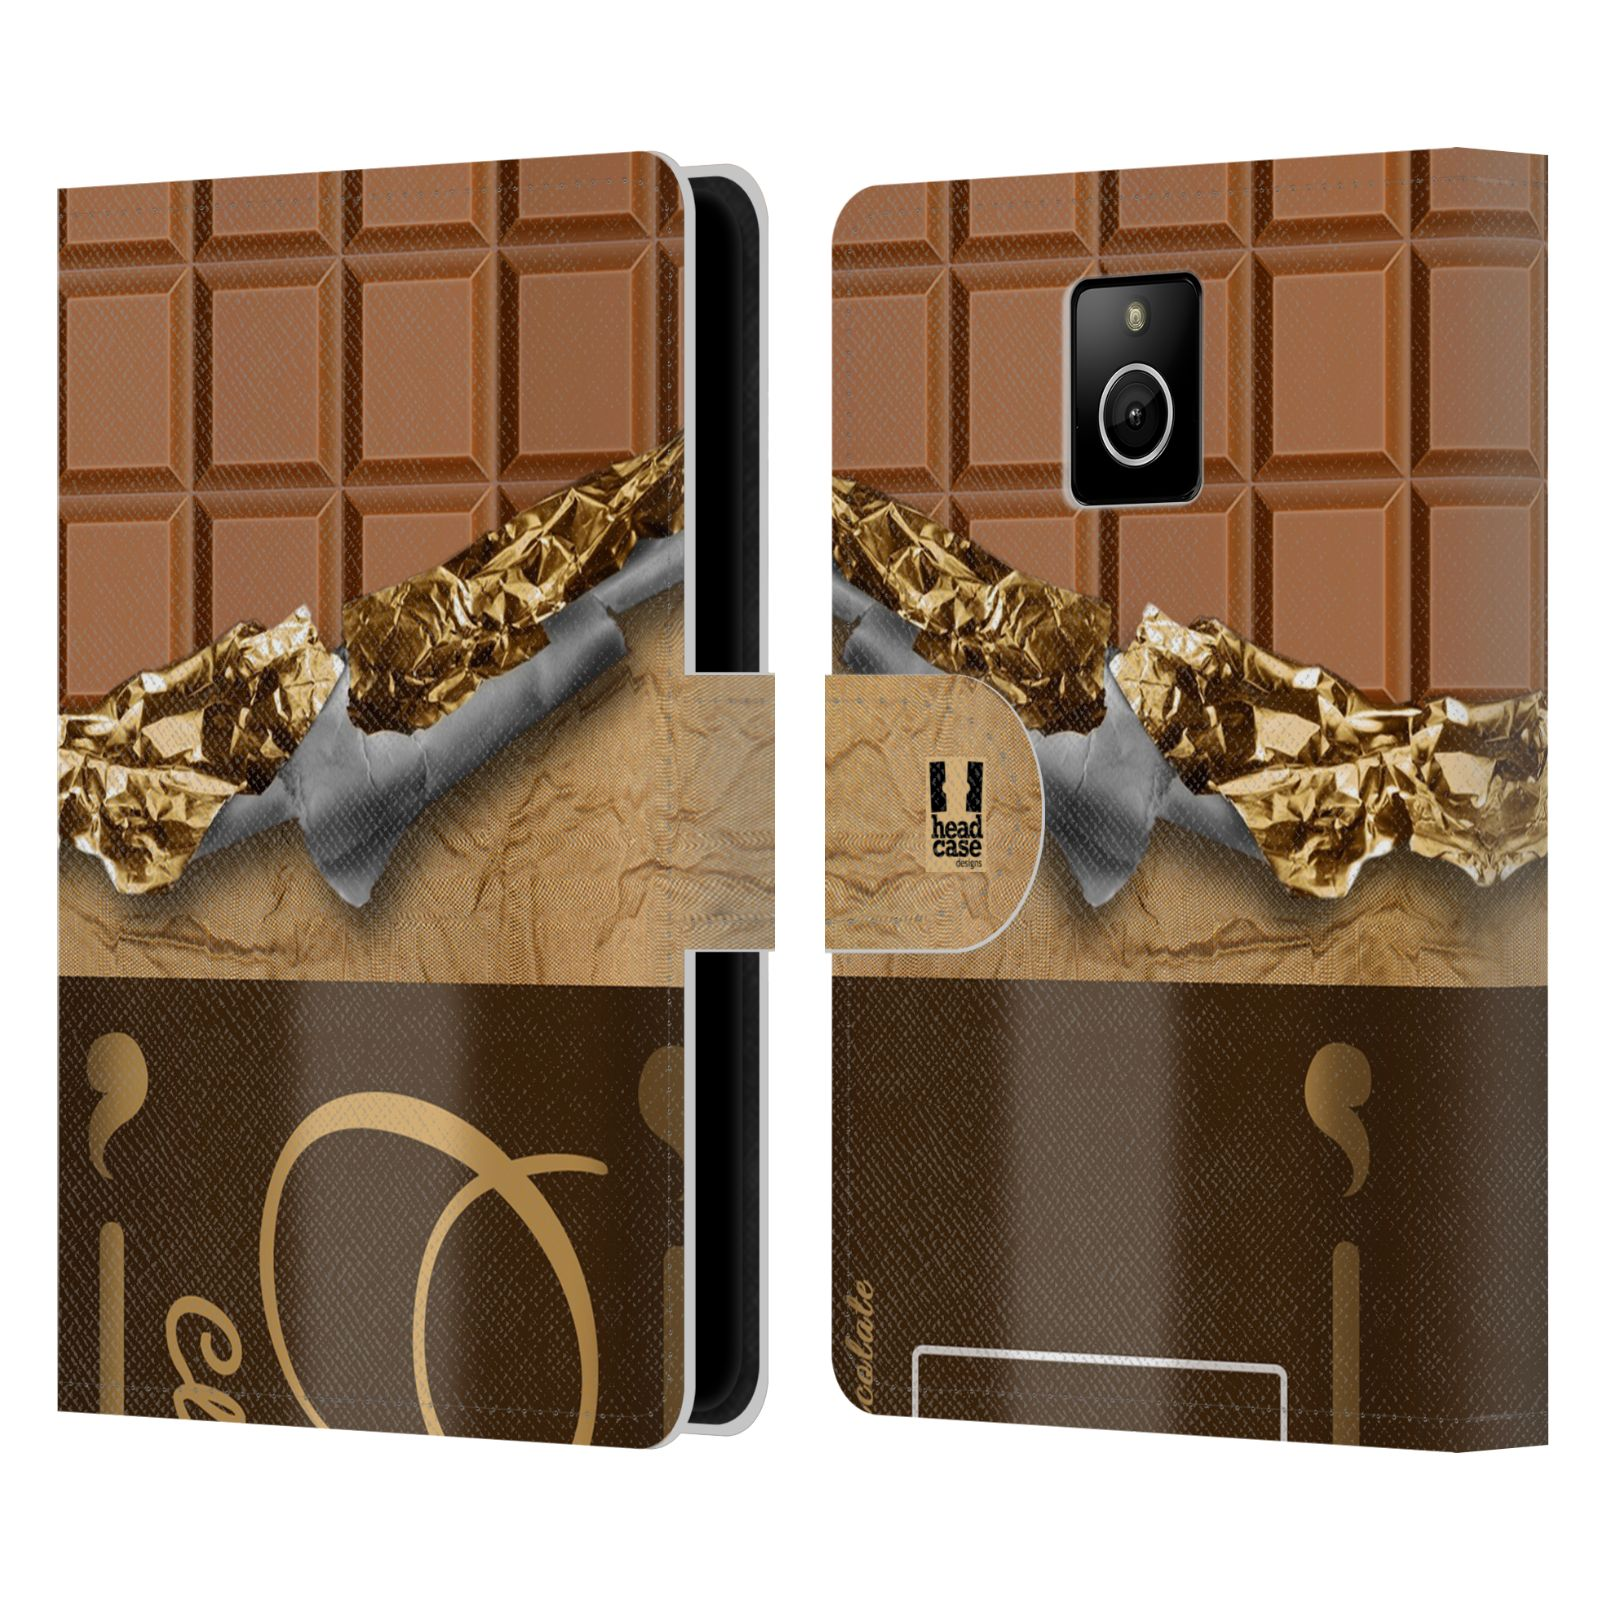 Head case designs chocolaty leather book wallet case for for Case design